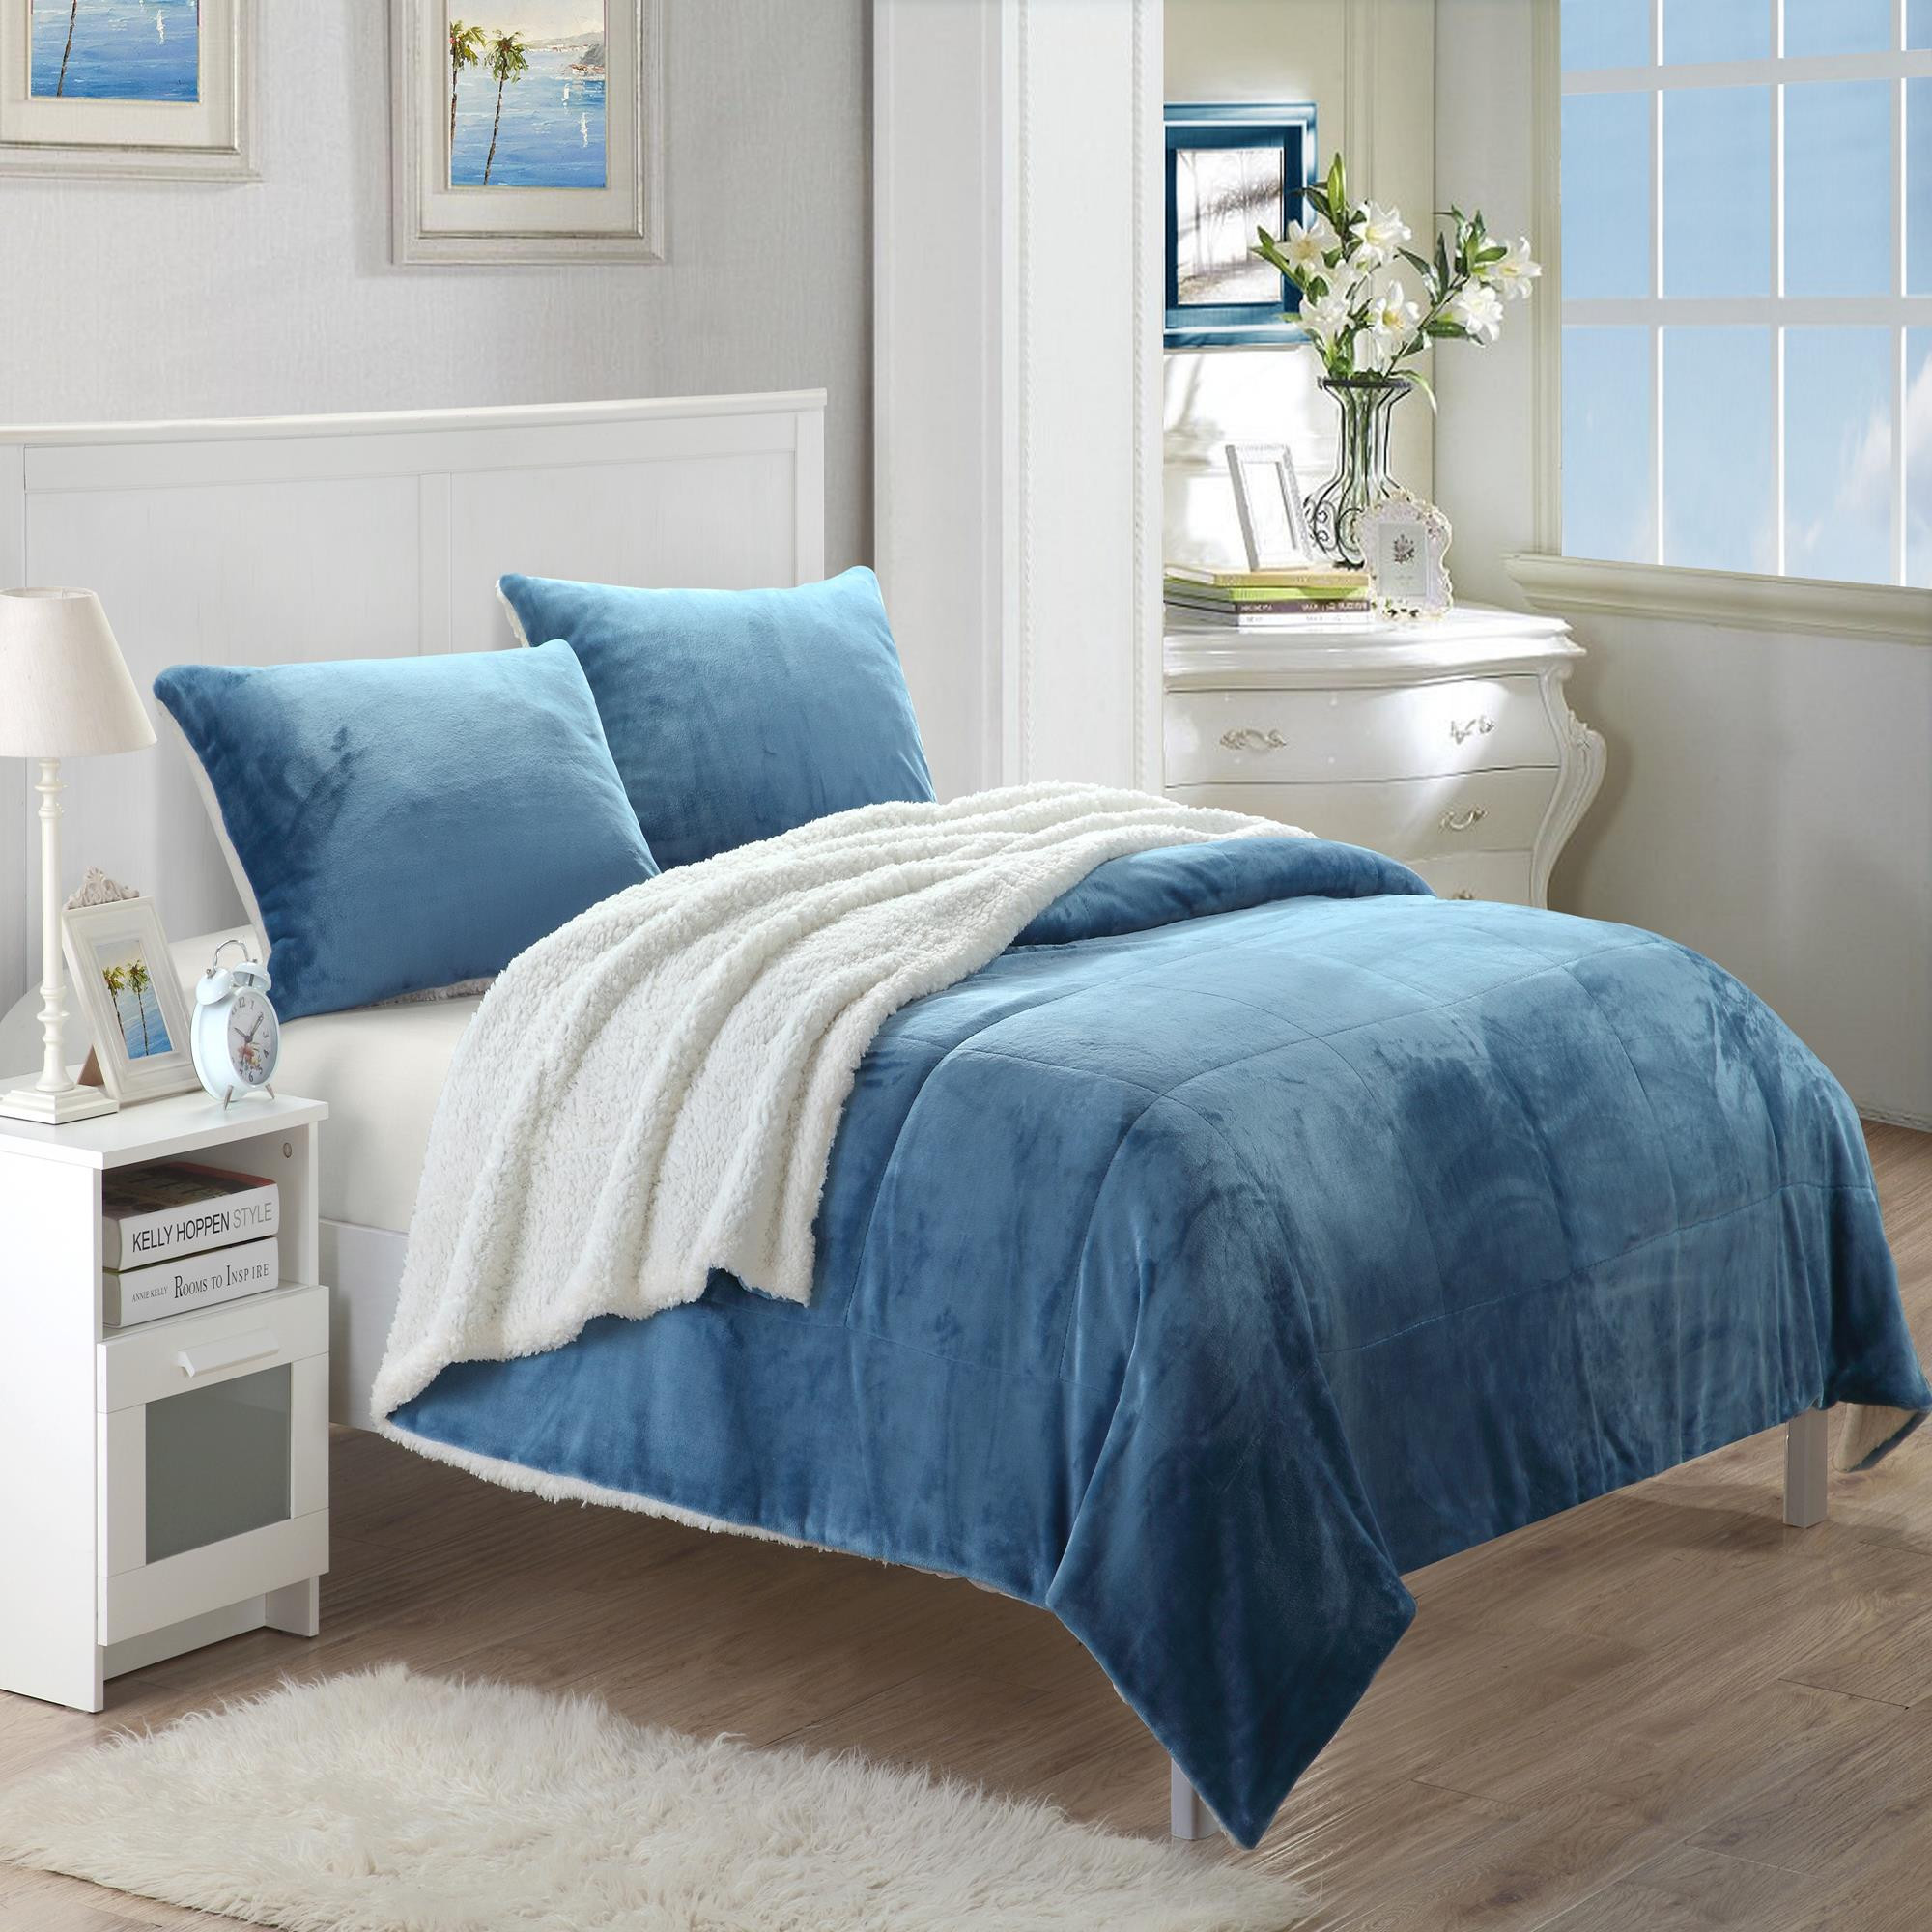 Evie Plush Microsuede Sherpa Lined Blue 7 Piece Blanket In A Bag Set